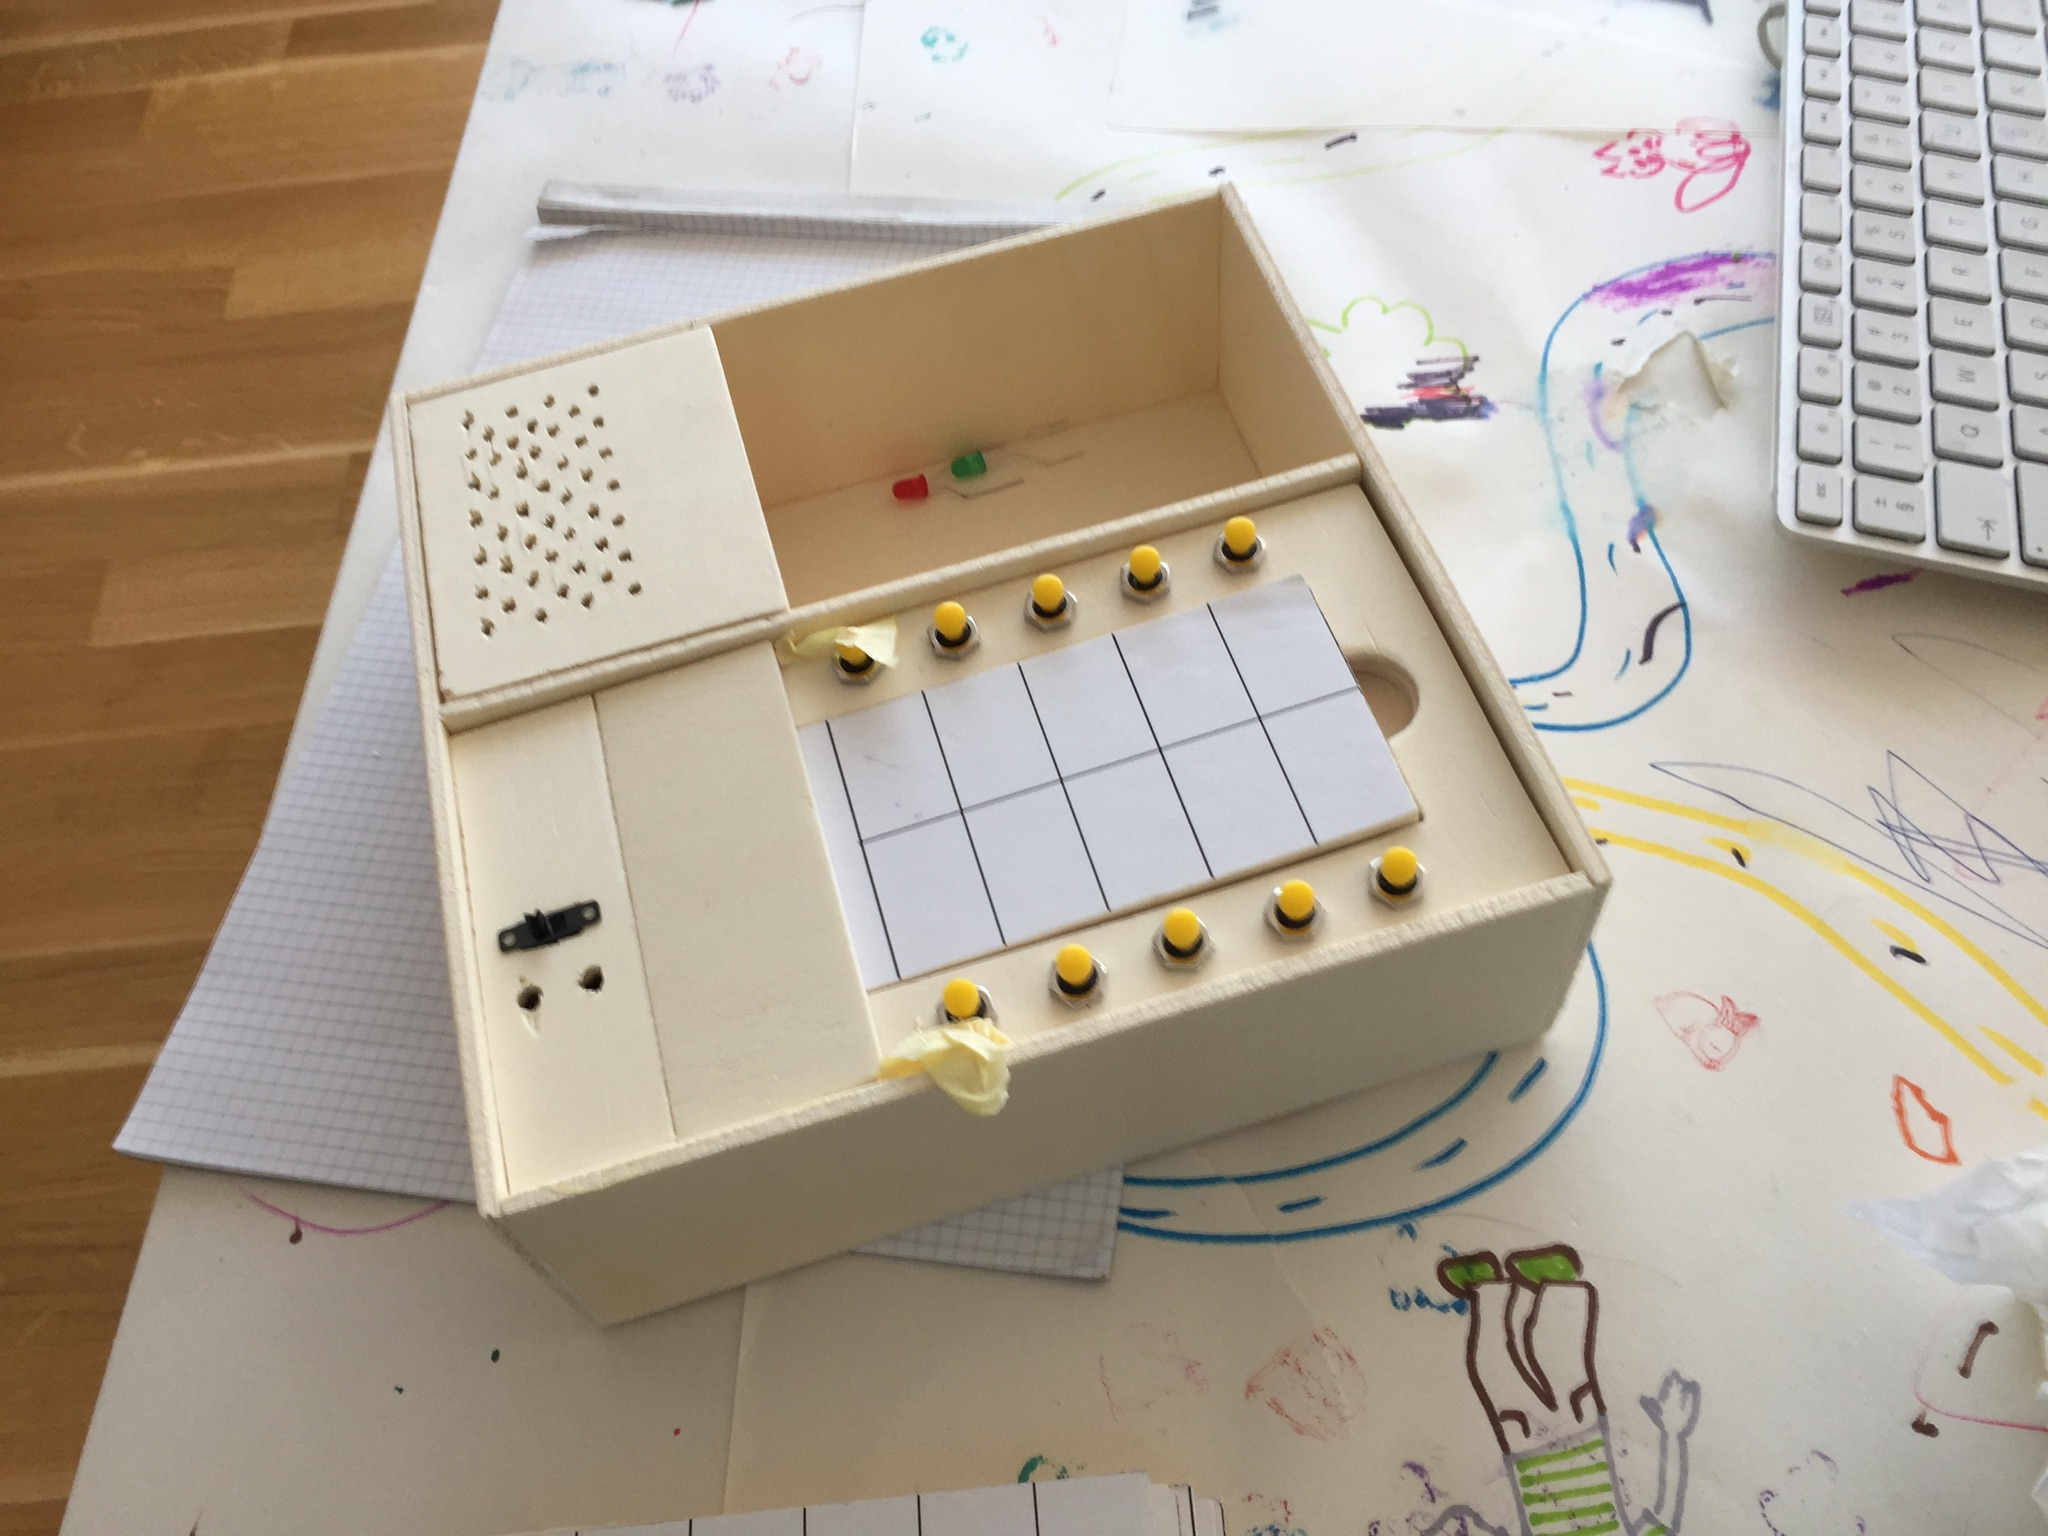 The first version with punch card interface